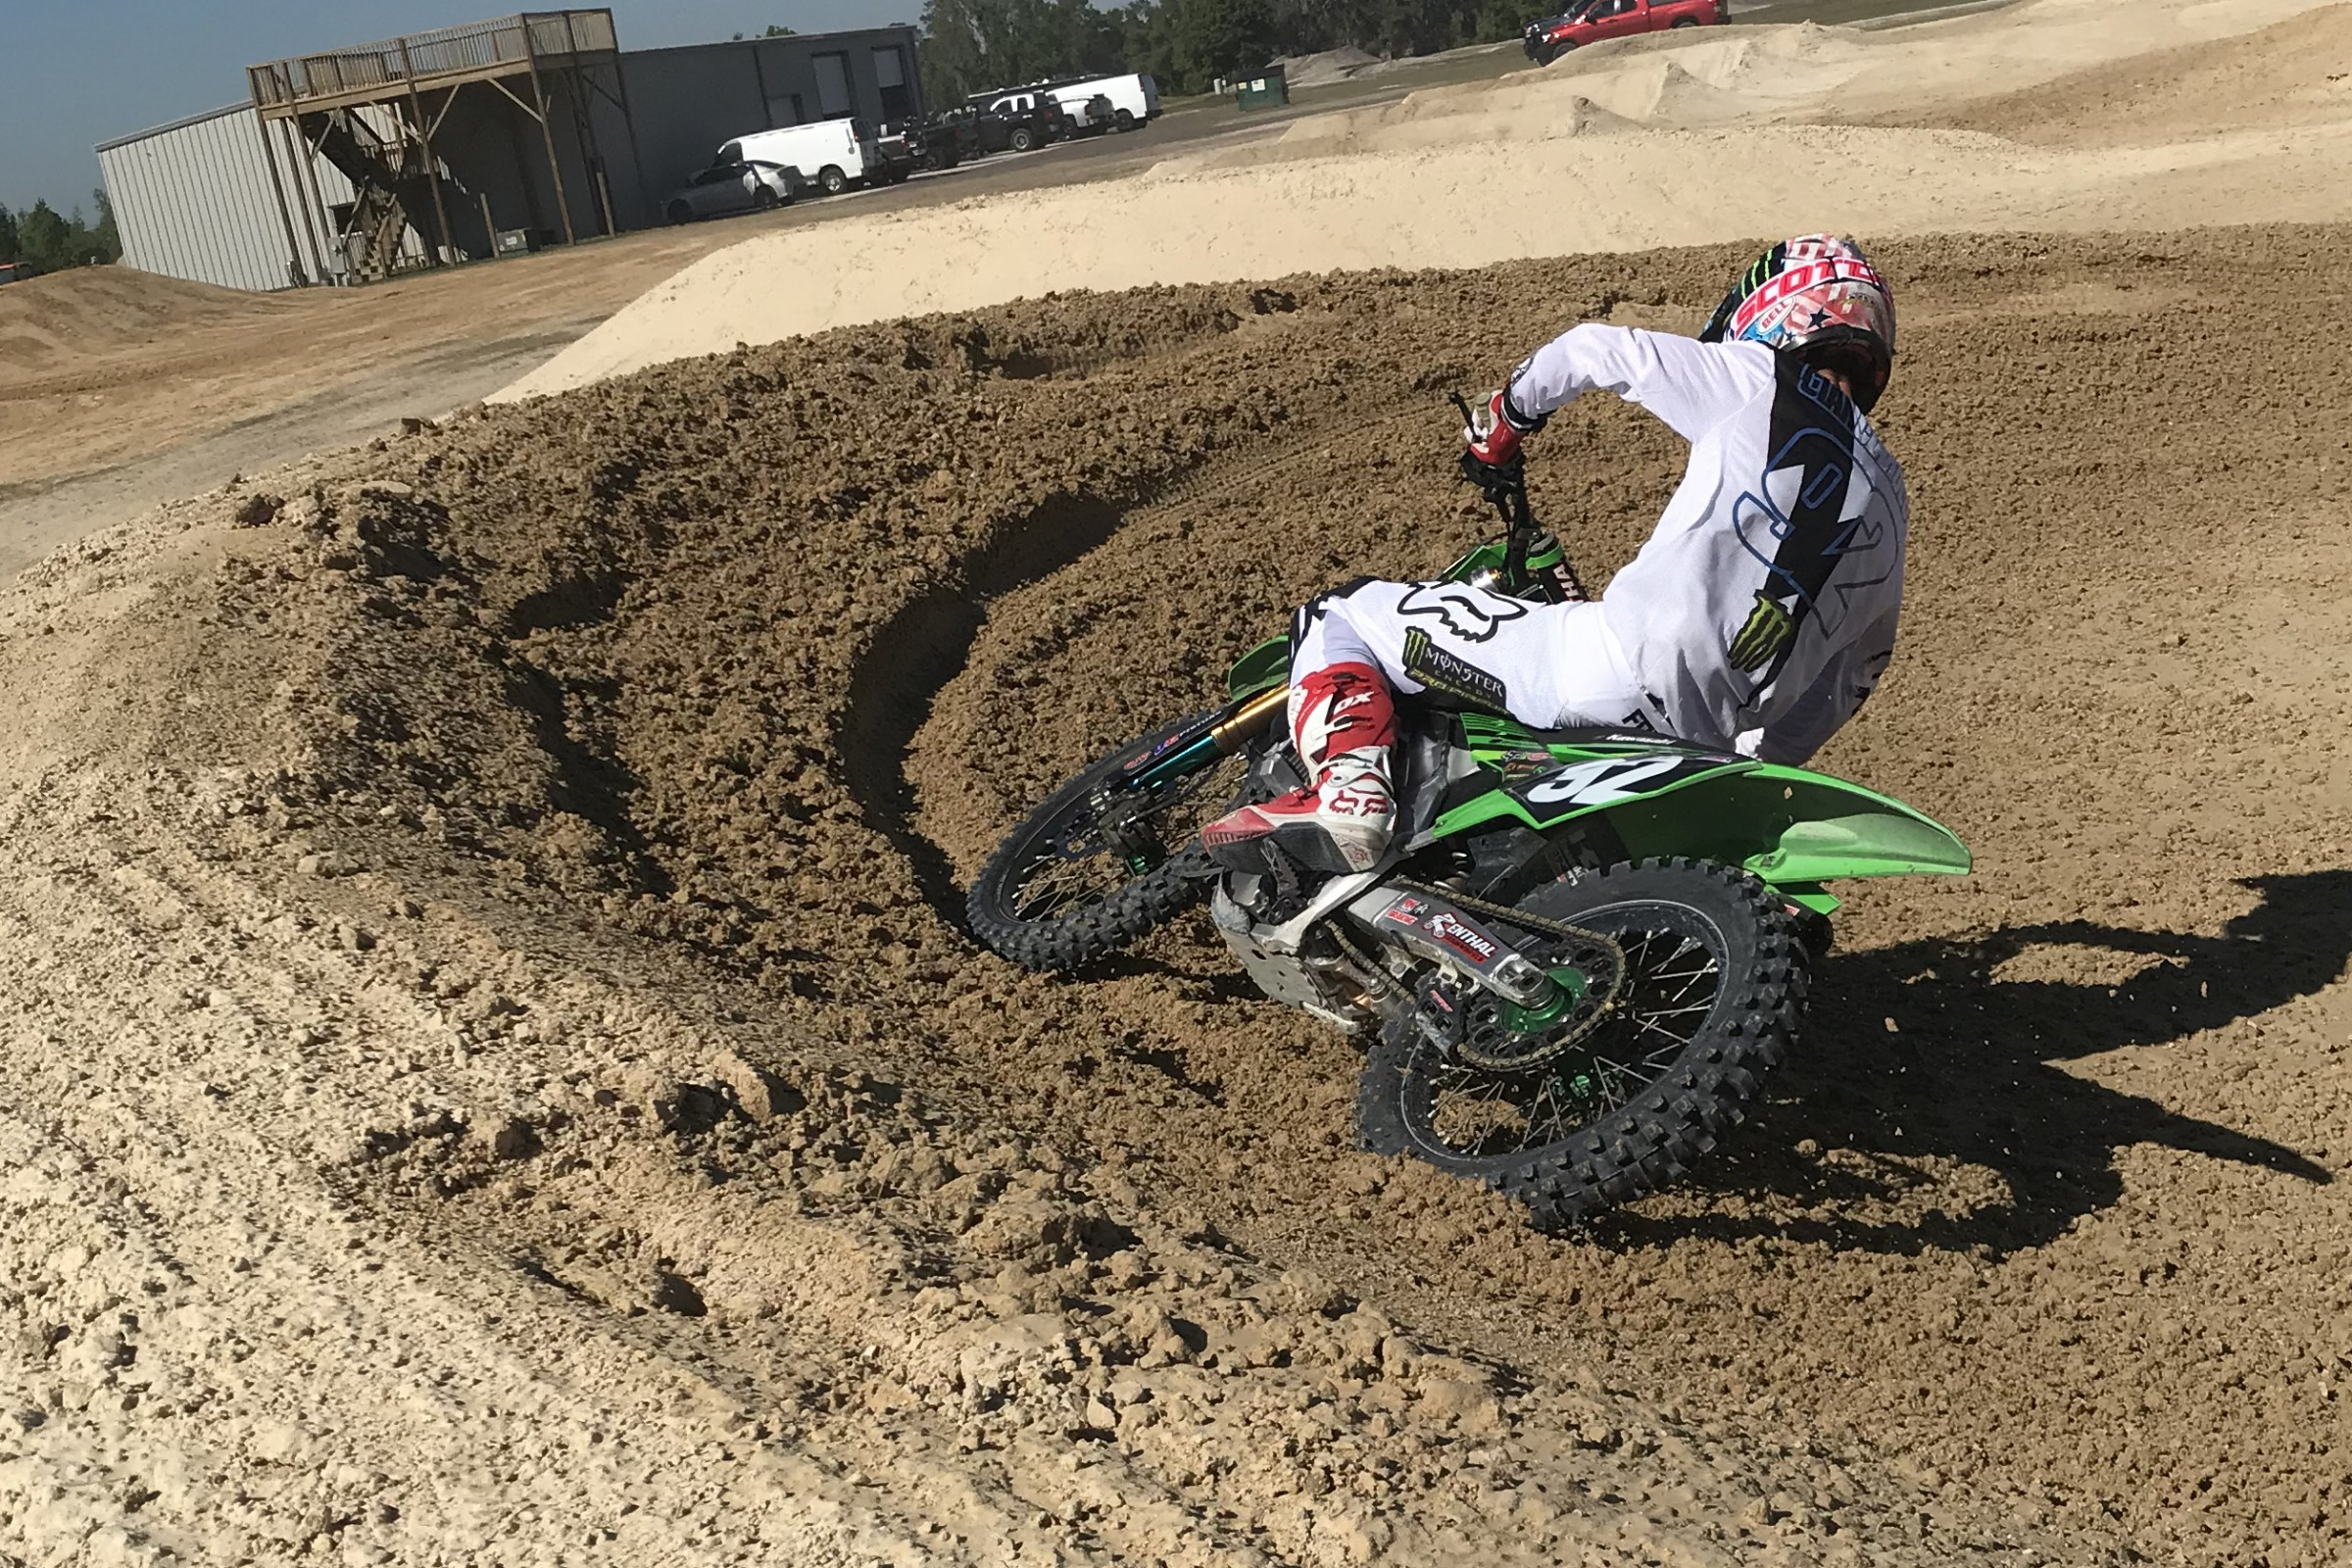 Cianciarulo tests with members of Team Honda at the Moto Sandbox.